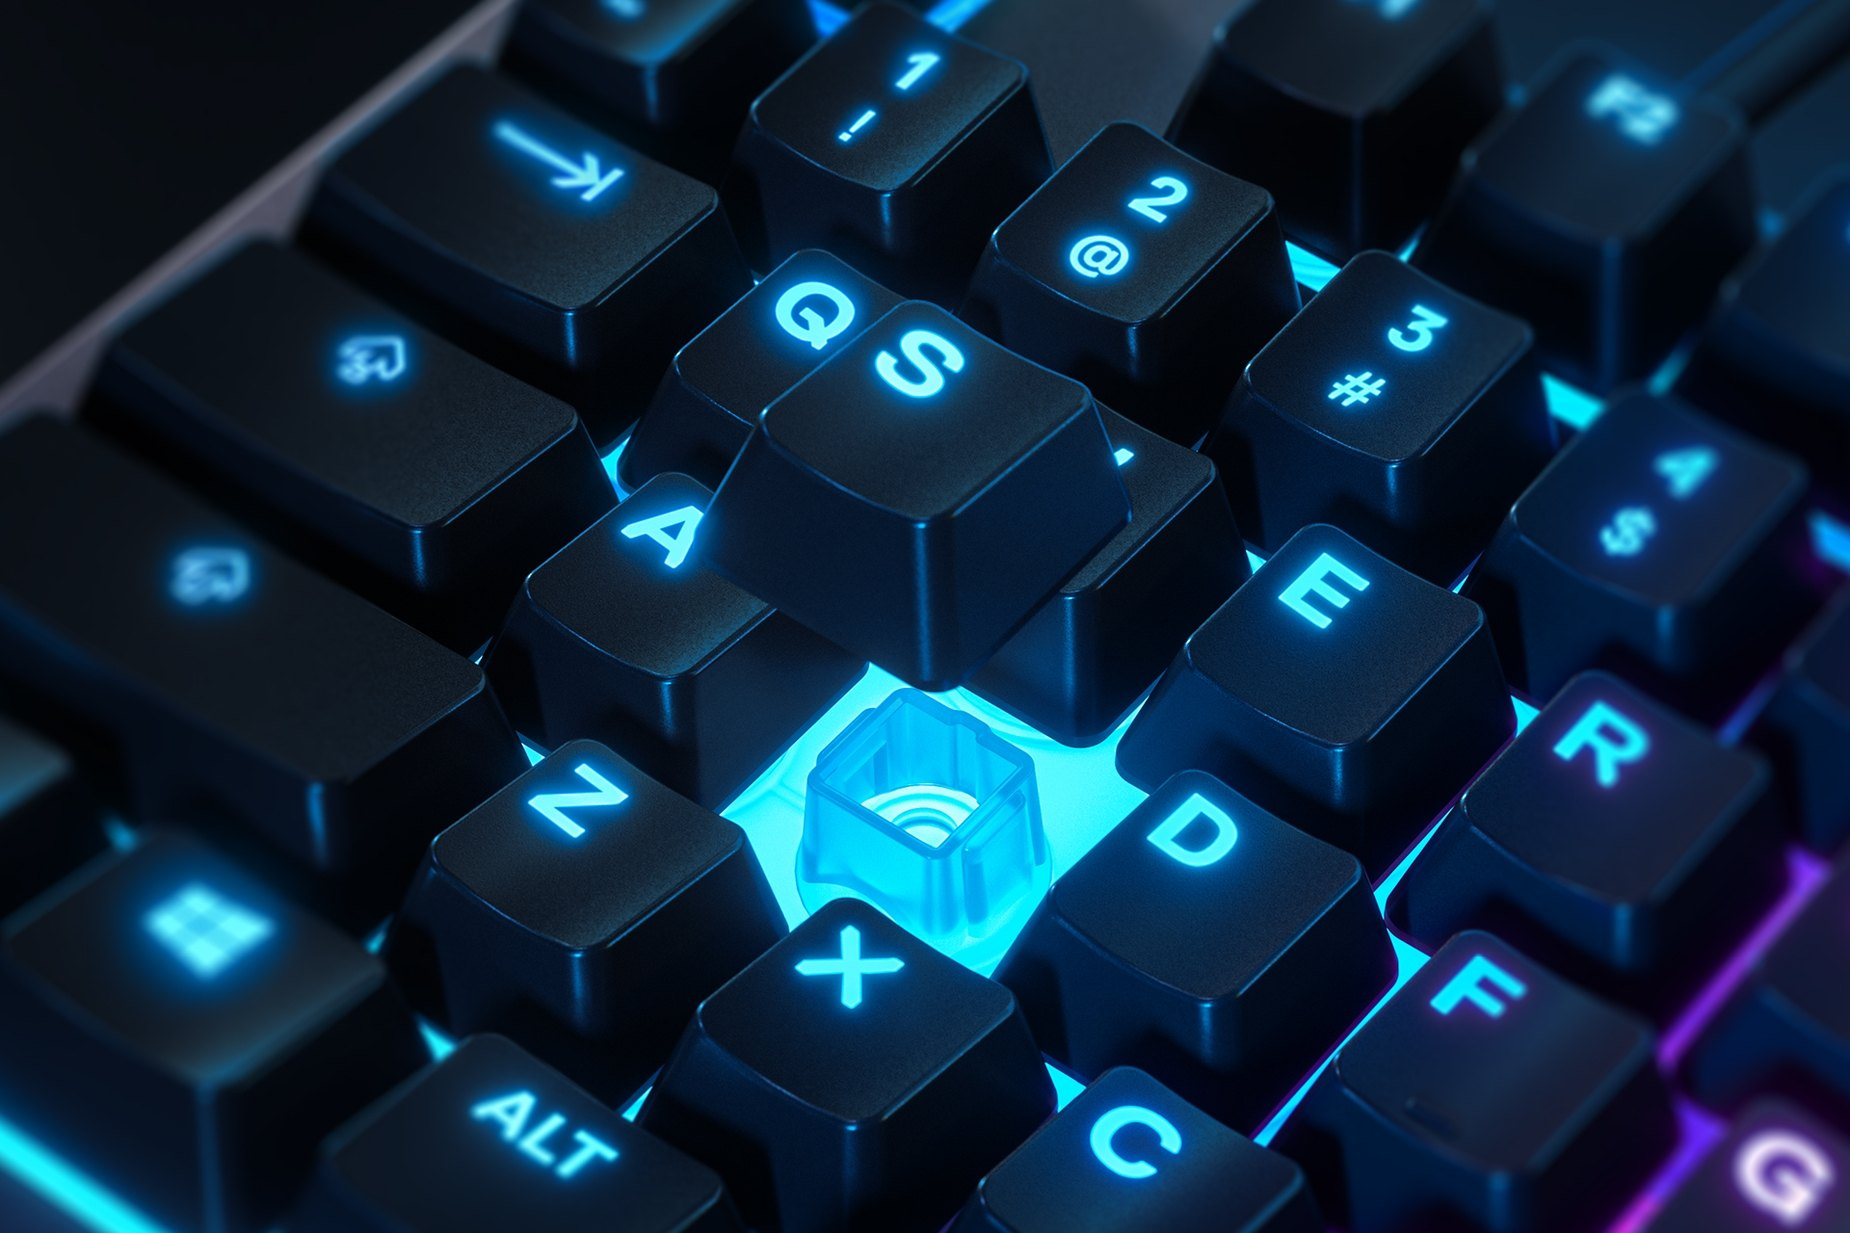 Zoomed in view of a single key on the Apex 3 gaming keyboard, the key is raised up to show the SteelSeries Whisper-Quiet Switch underneath